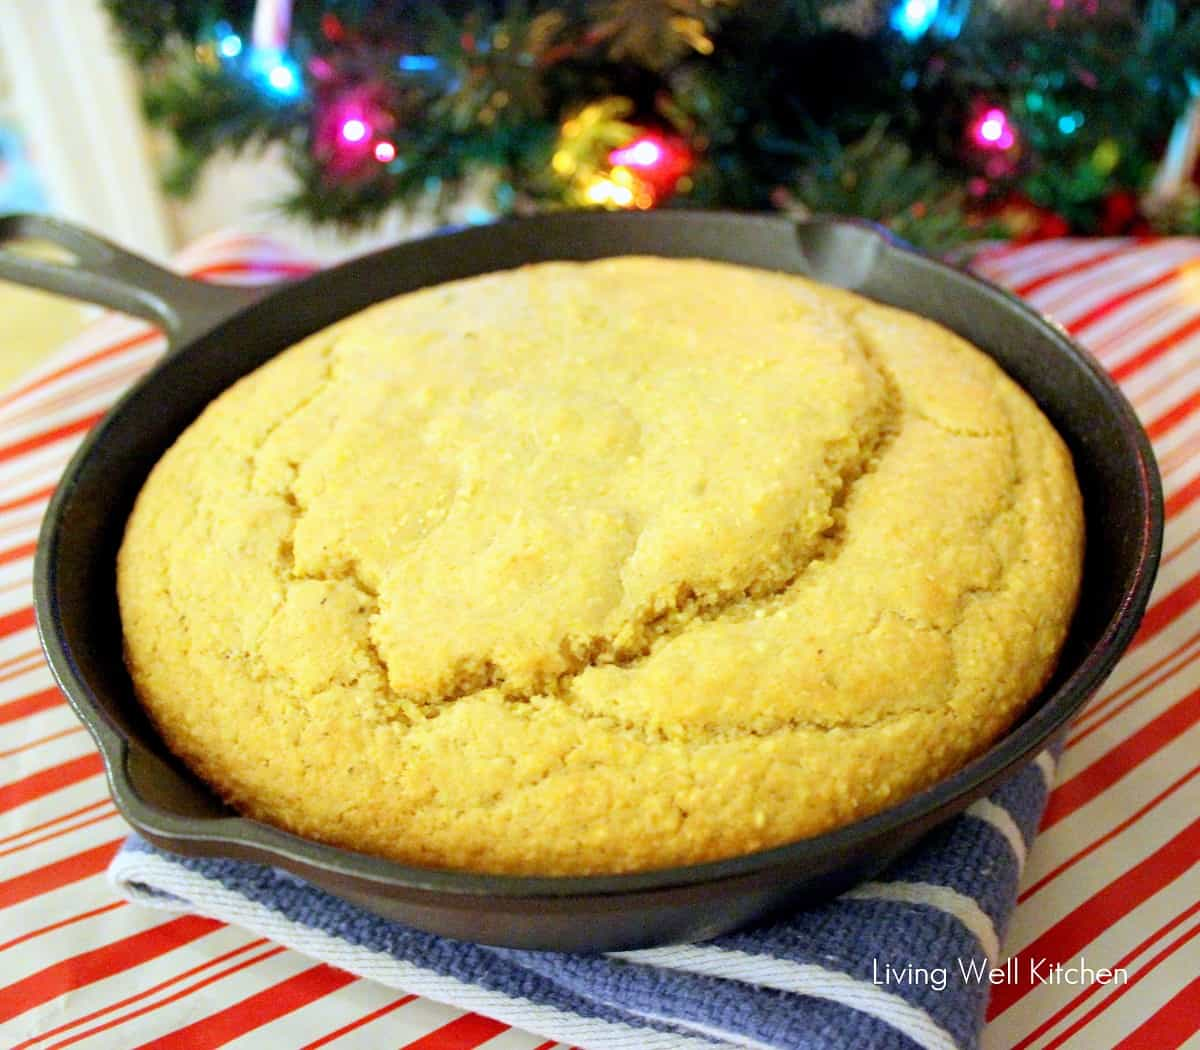 Whole Grain Cornbread in cast iron skillet with Christmas tree in background